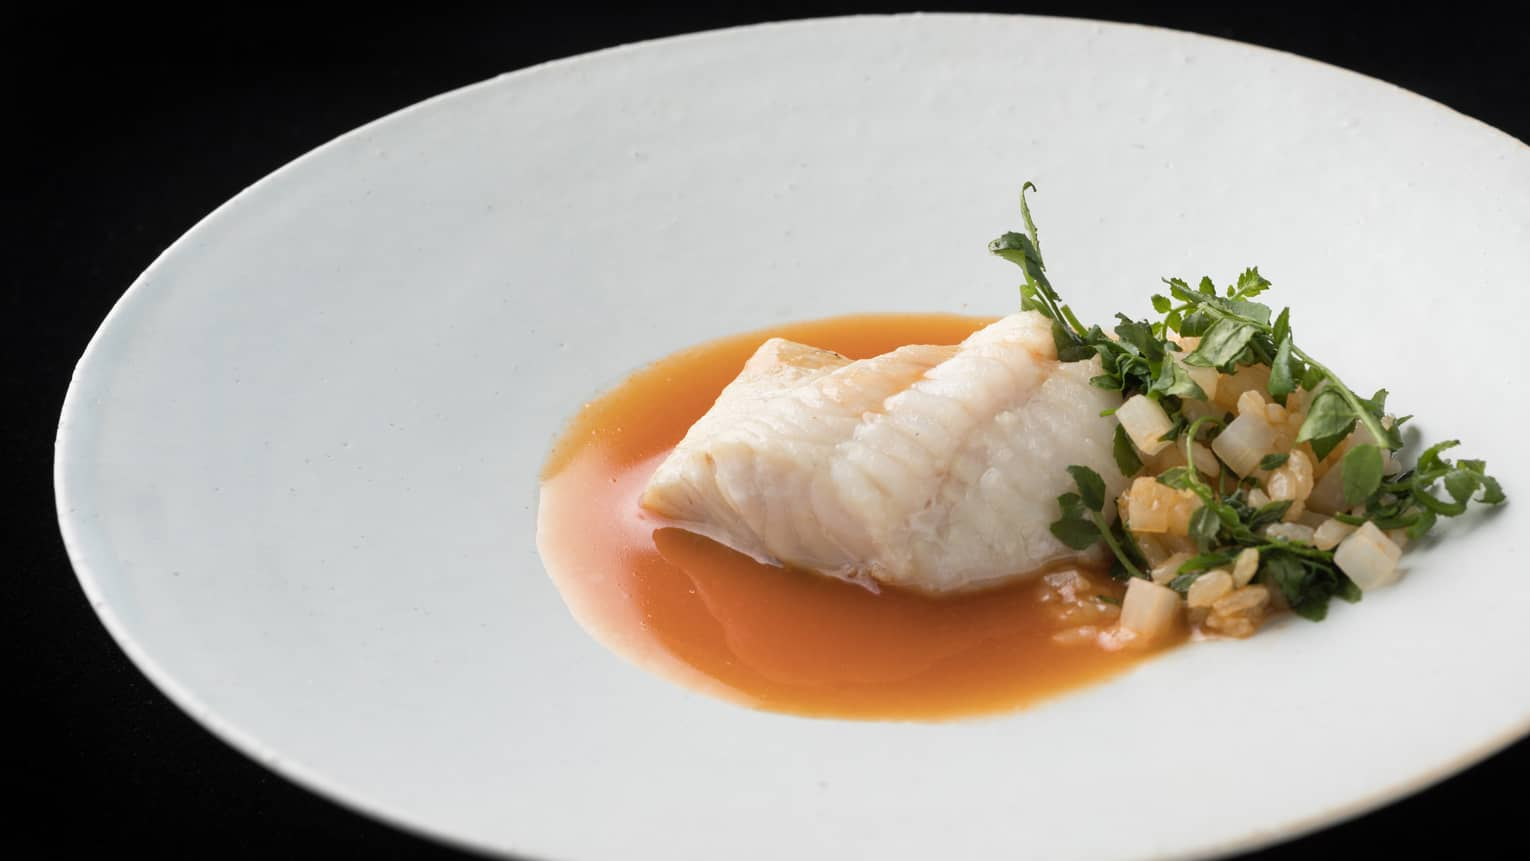 Motif Restaurant dish with white fish fillet in sauce, chopped vegetables, grains in sauce